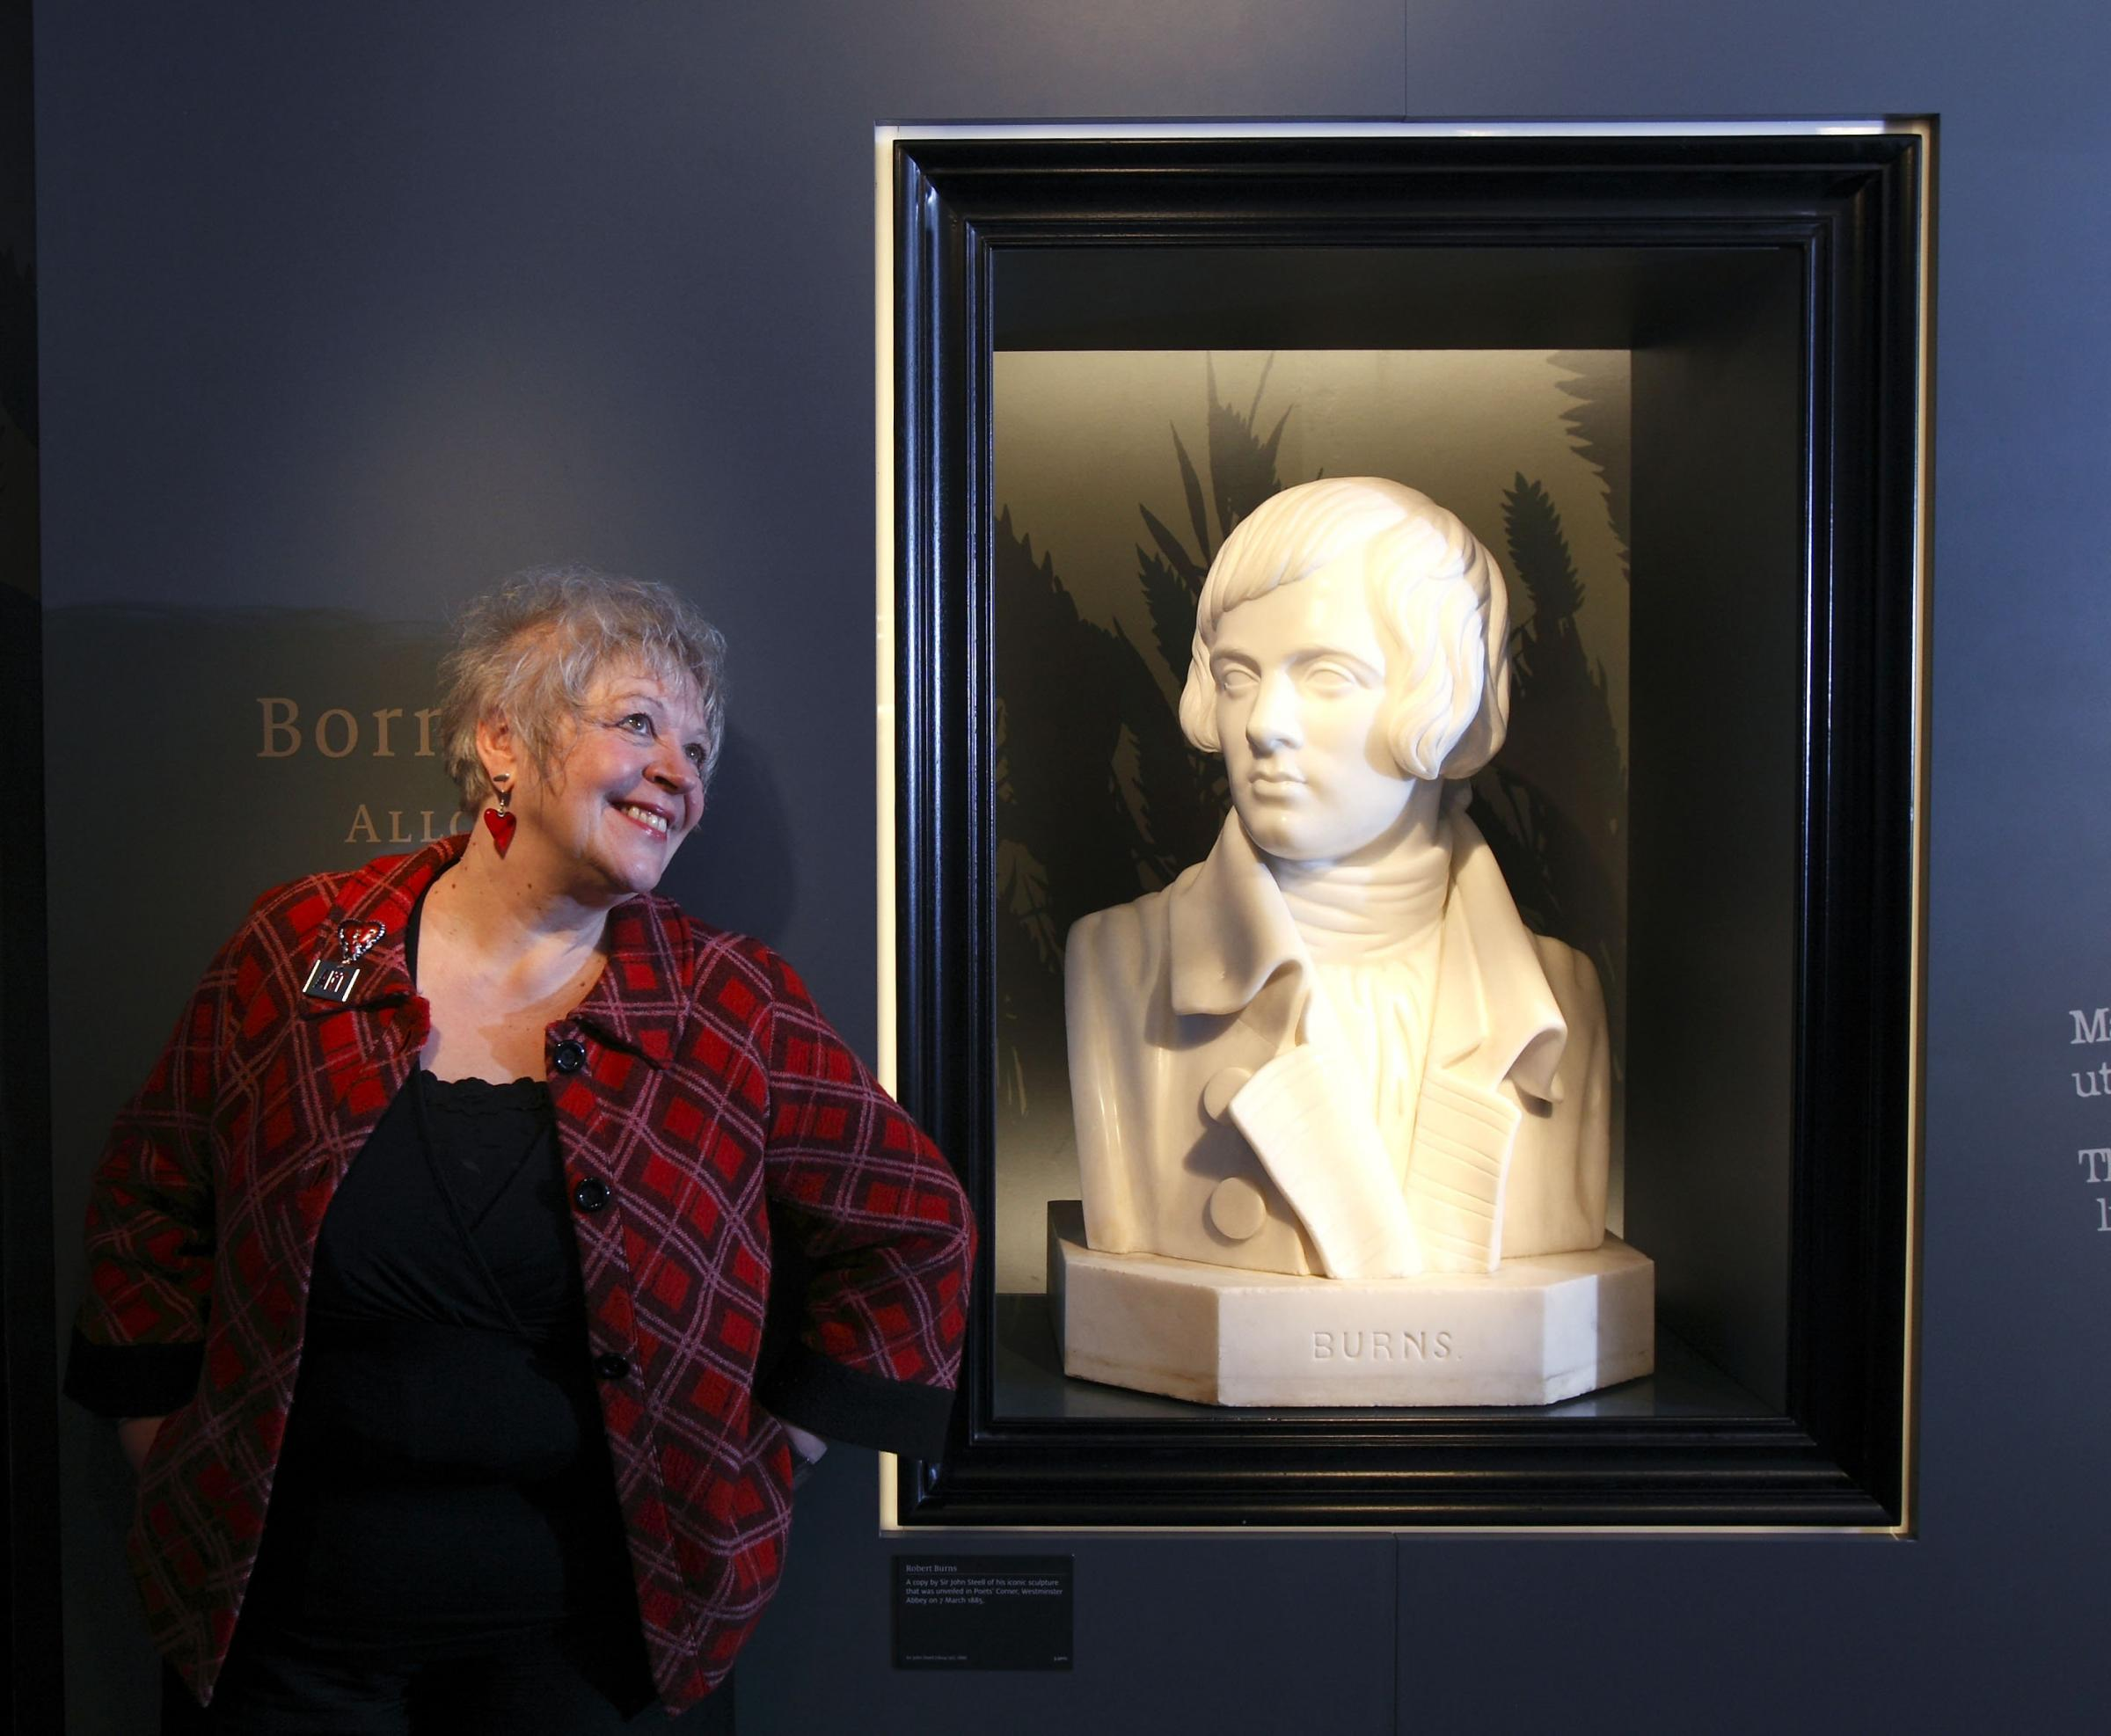 Liz Lochhead pictured next to a bust of Burns in the Robert Burns Birthplace Museum in Alloway